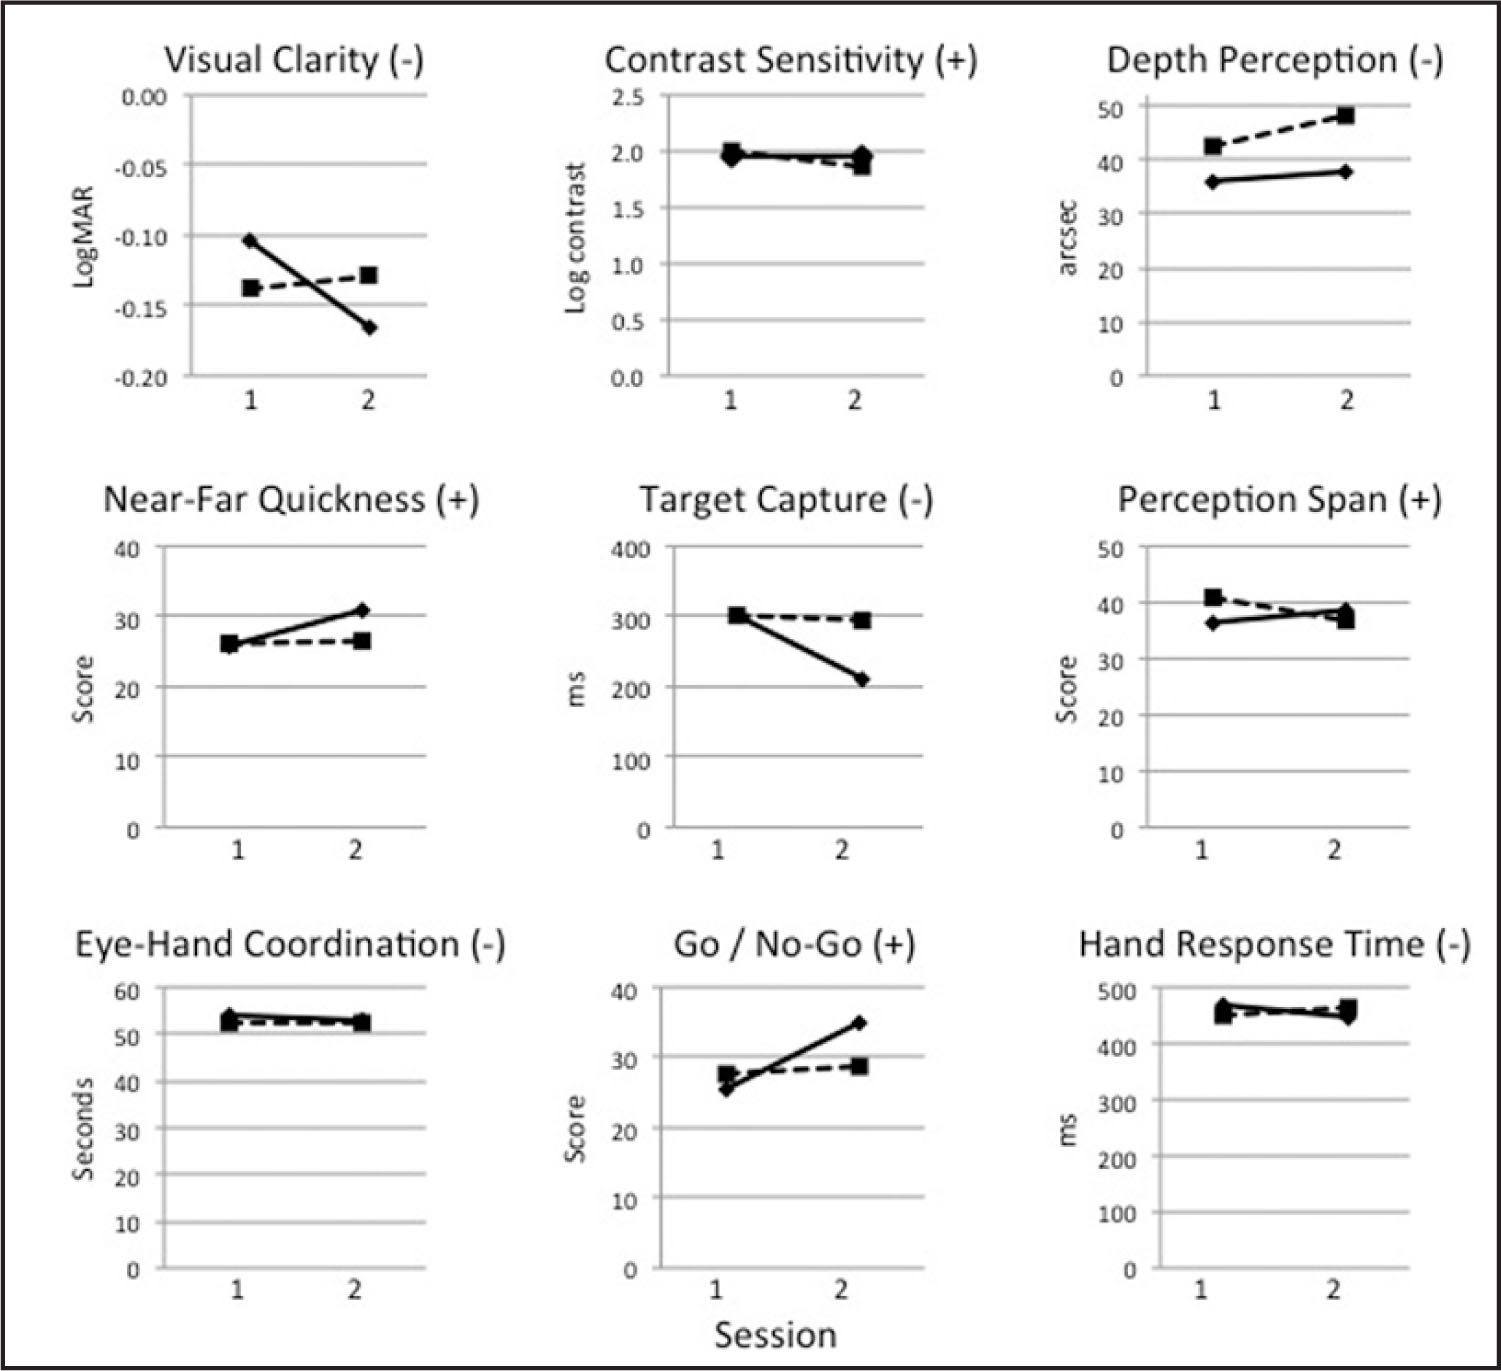 Graphical comparison of performance for the intervention (solid) and control (dashed) groups on each of the 9 Nike Sensory Station (Nike, Inc., Beaverton, OR) tasks. Tasks indicated with (+) indicate that higher scores reflect better performance, whereas those marked with (−) indicate that lower scores reflect better performance.